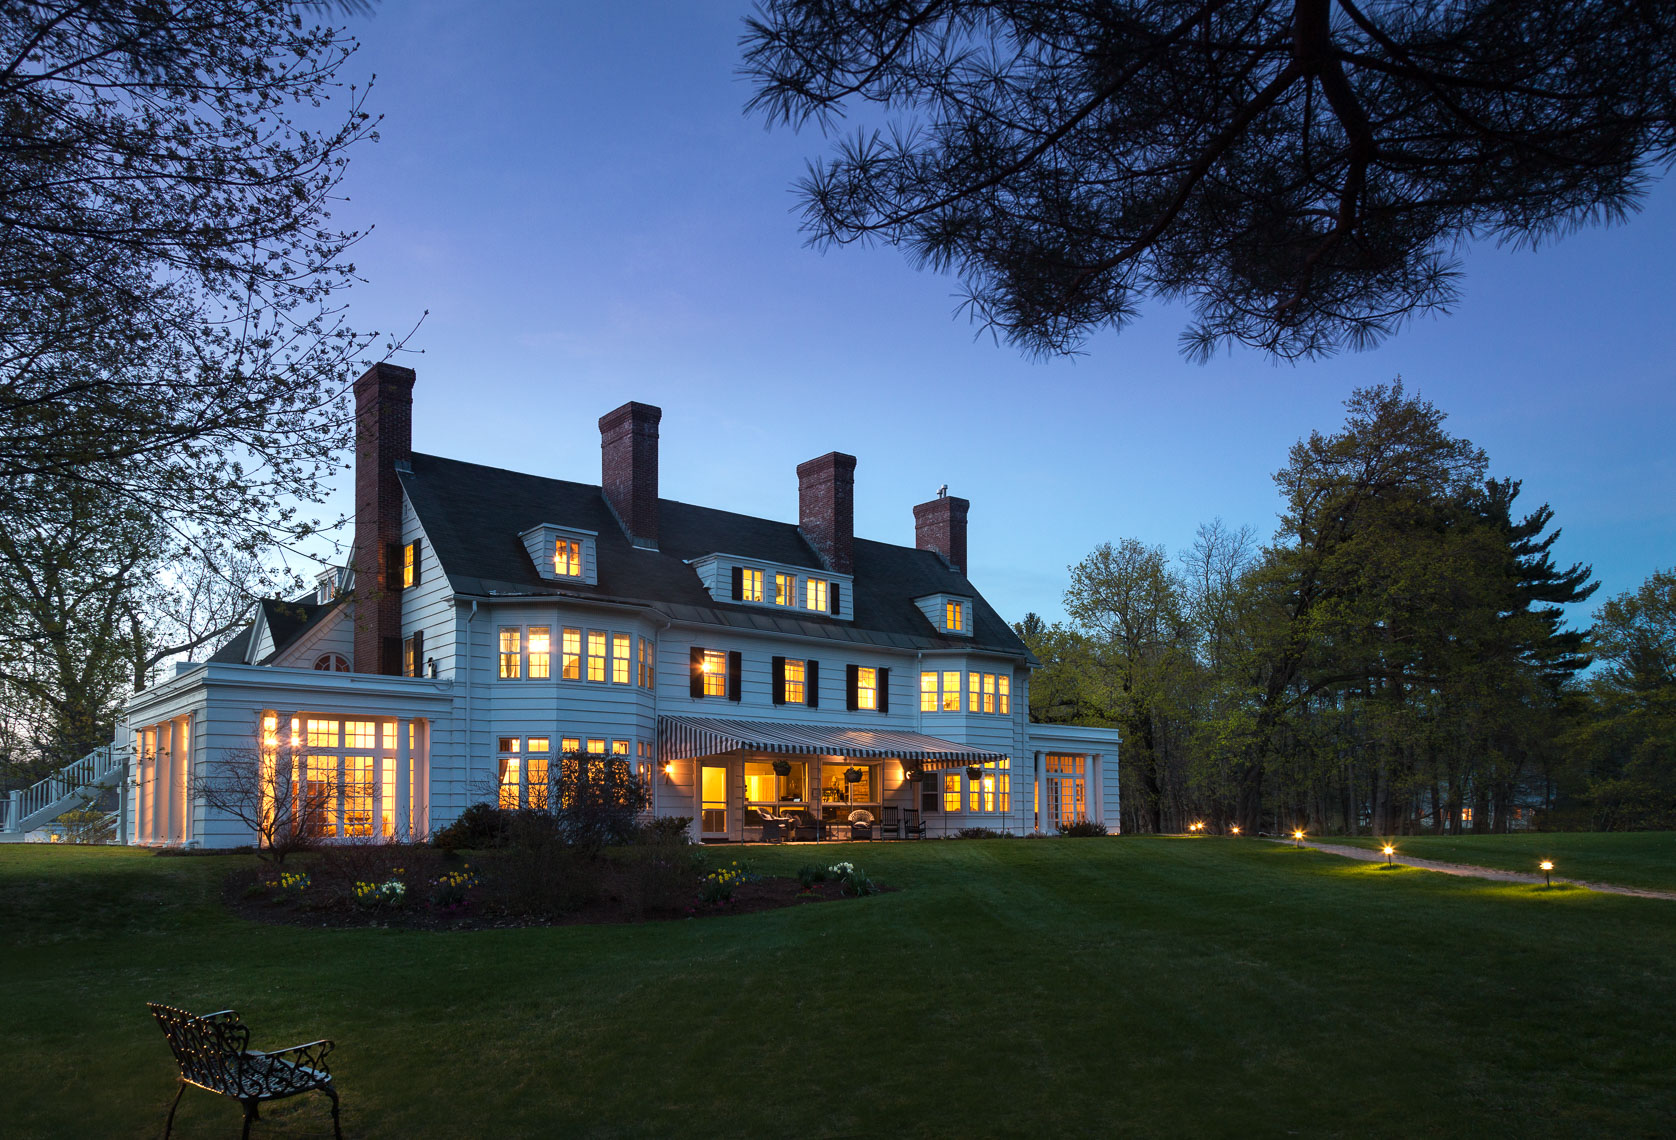 Four Chimneys Inn, VT